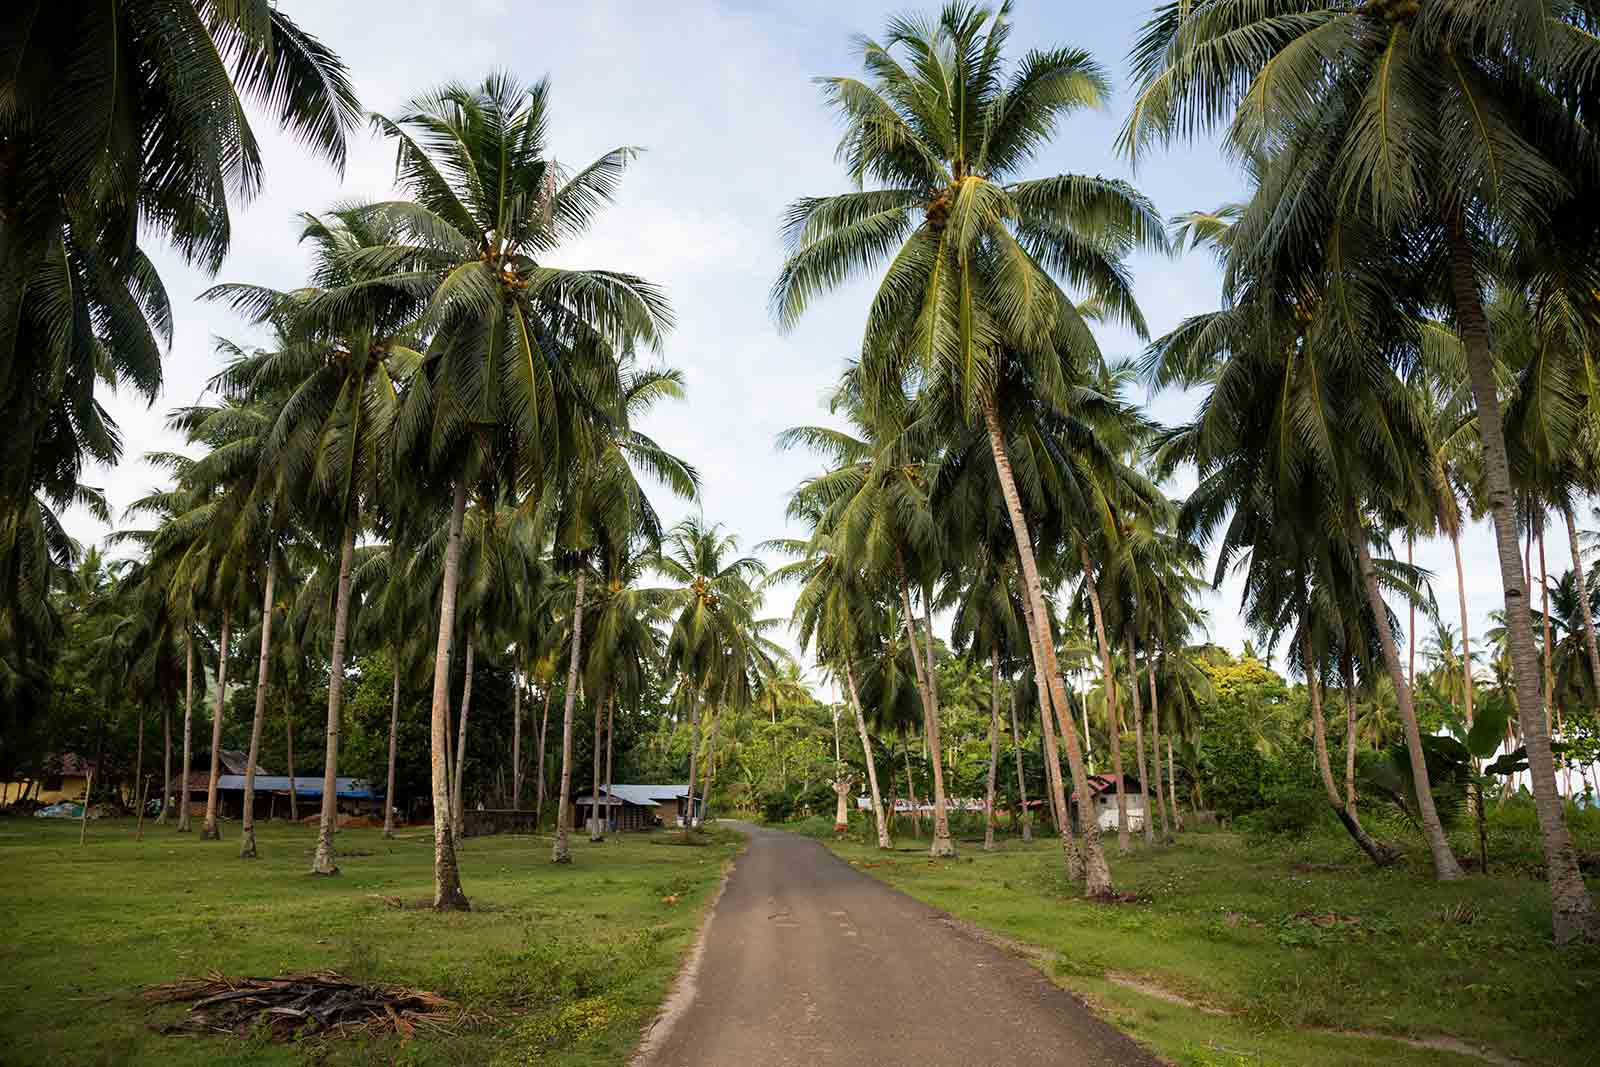 Maluku Islands: The way down south on Ambon islands lead us through several beautiful palm tree alleys.